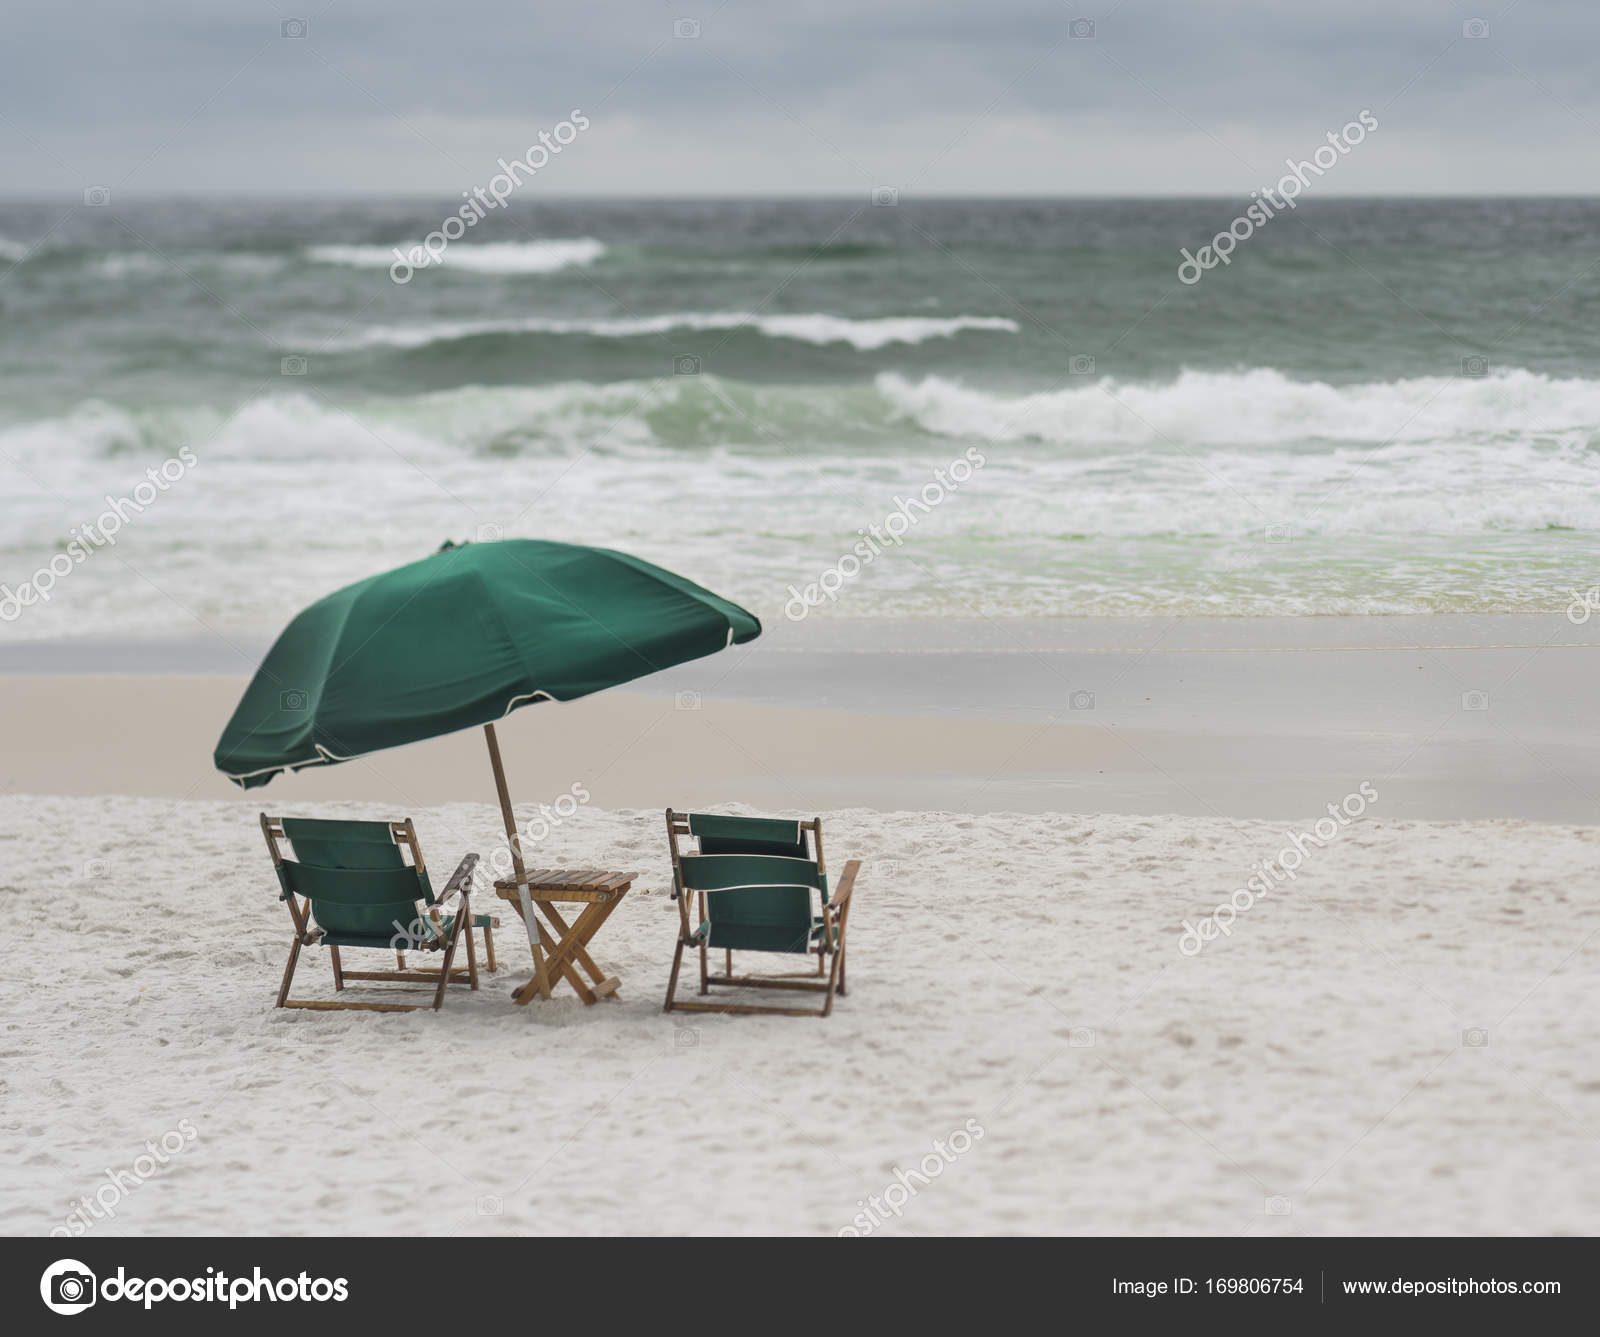 Two Vintage Wood And Canvas Lounge Chairs And Large Umbrella Overlooking  Stormy Day At A Florida Beach. Photo Taken With A Tilt Shift Lens, Creative  Depth ...